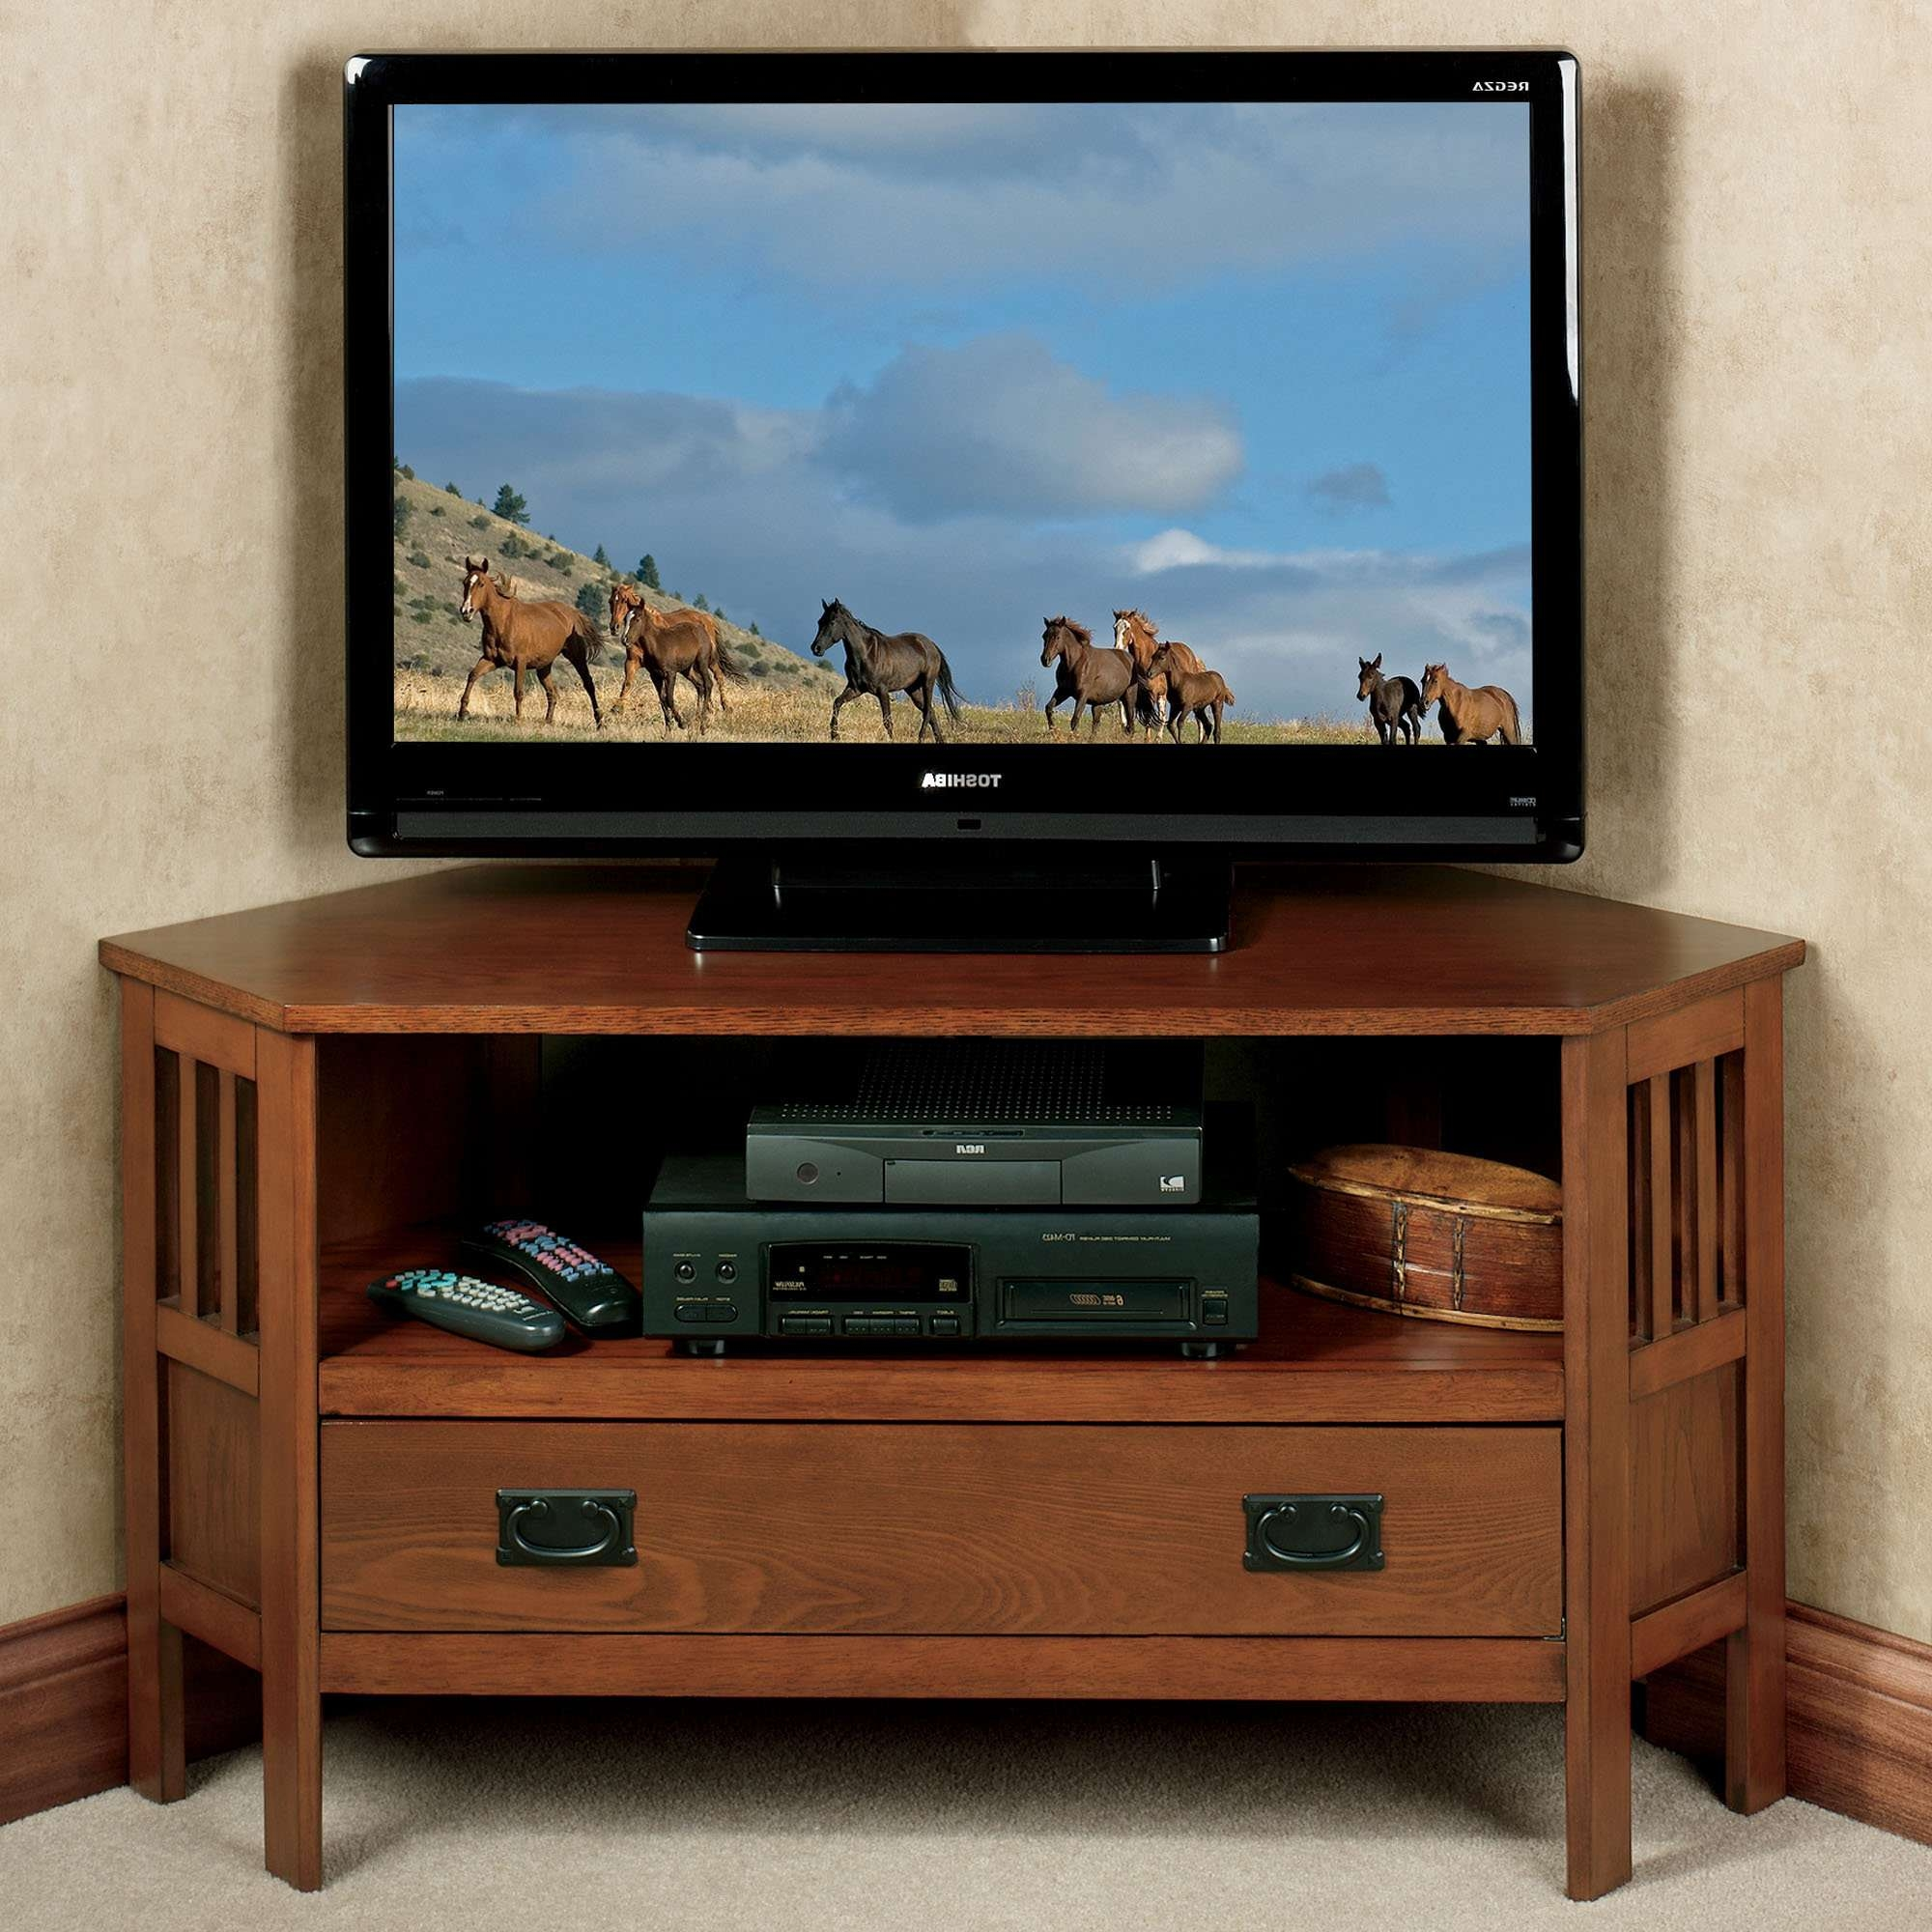 Wood Corner Tv Stands For 50 Inch Tv Tags : 54 Imposing Wood Pertaining To 50 Inch Corner Tv Cabinets (View 2 of 20)